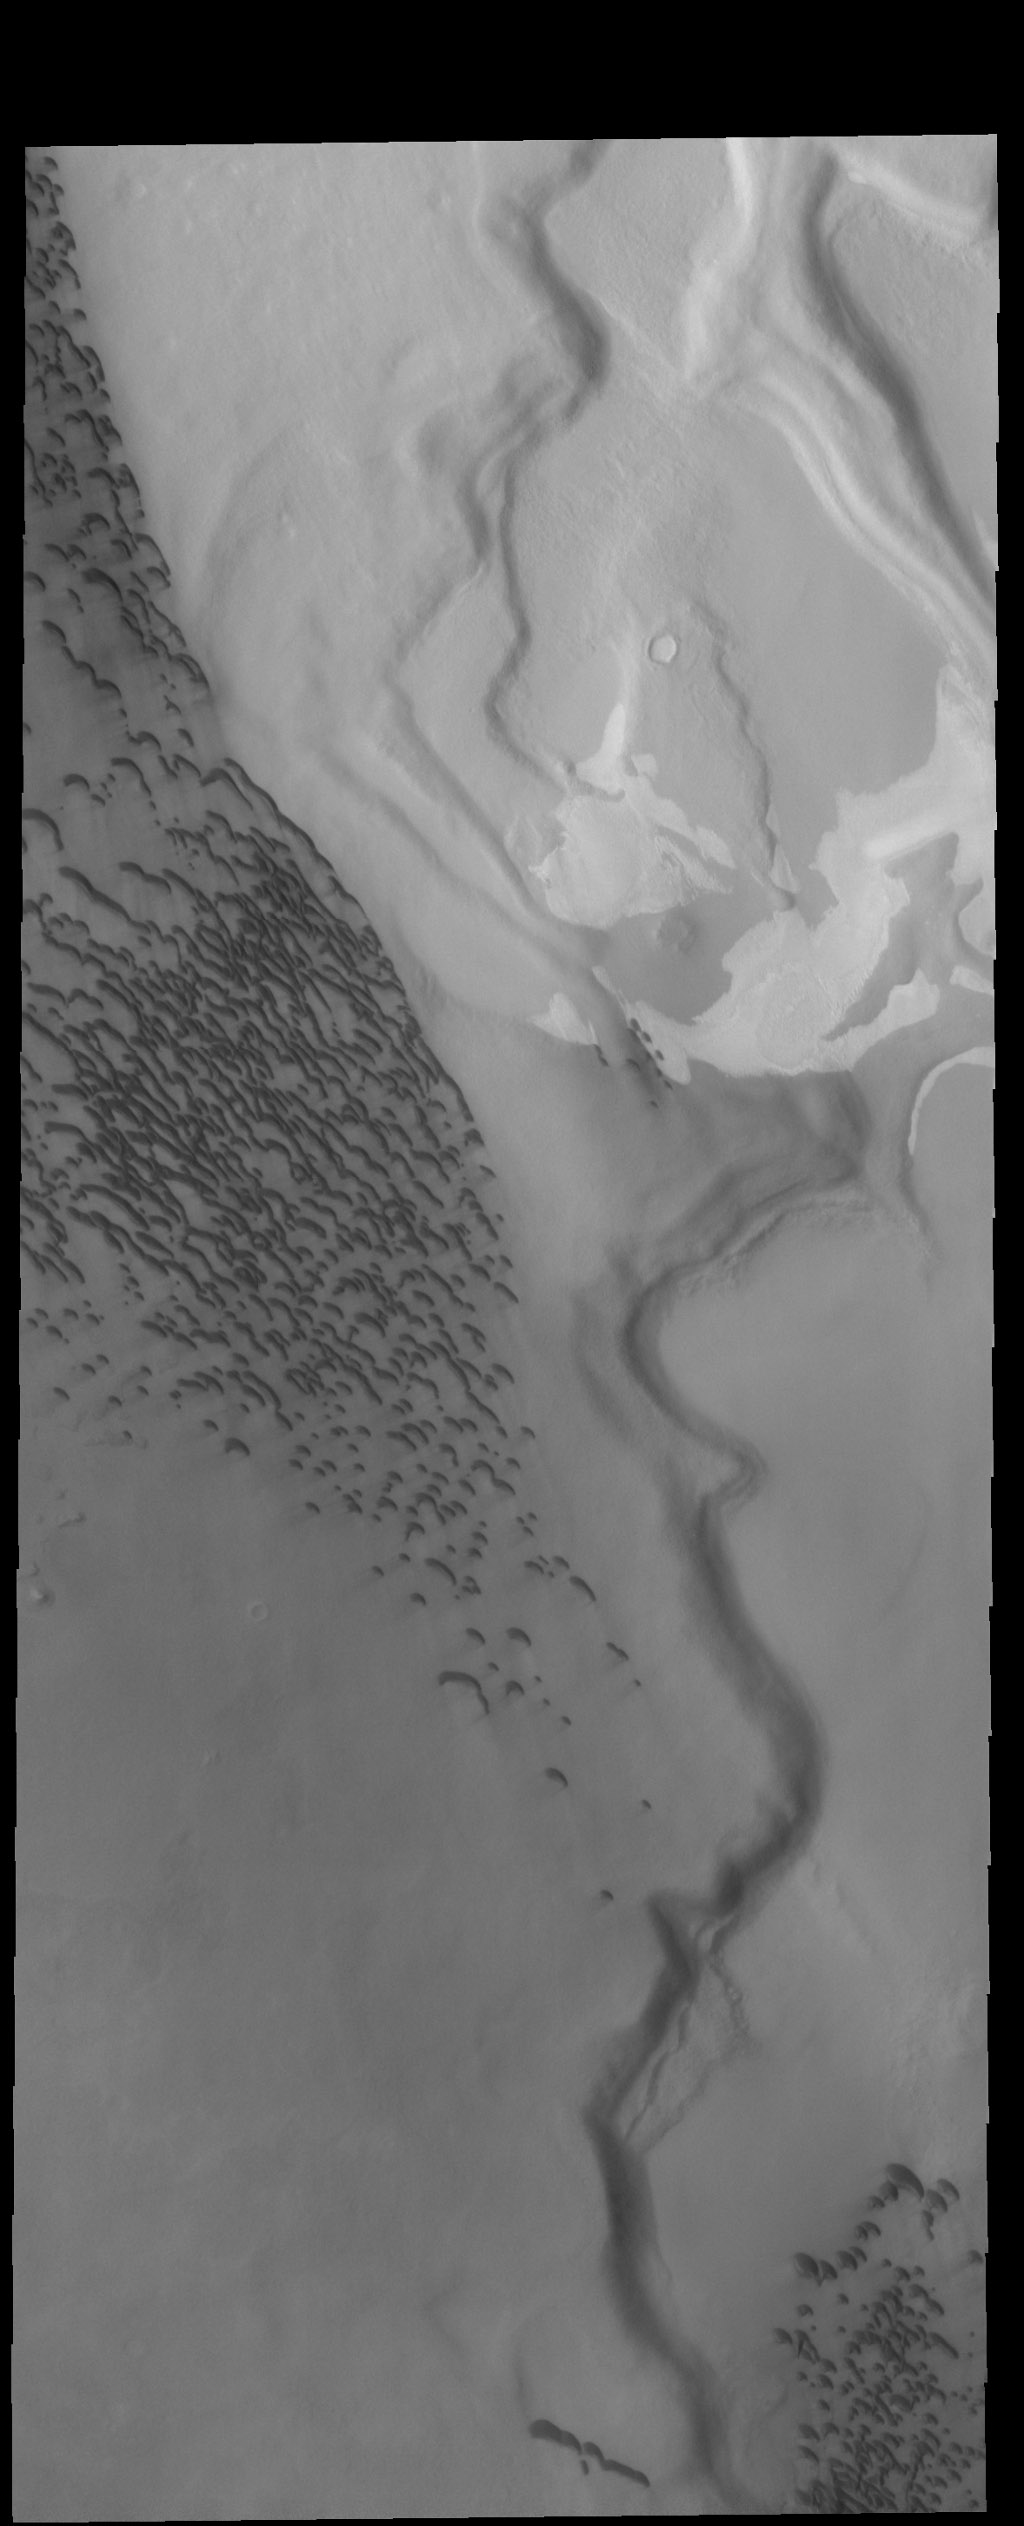 This image from NASA's 2001 Mars Odyssey spacecraft shows Hyperborei Cavi - the low regions on the right side of the image. Dunes are found both in the lows and on the higher region on the left side of the image.